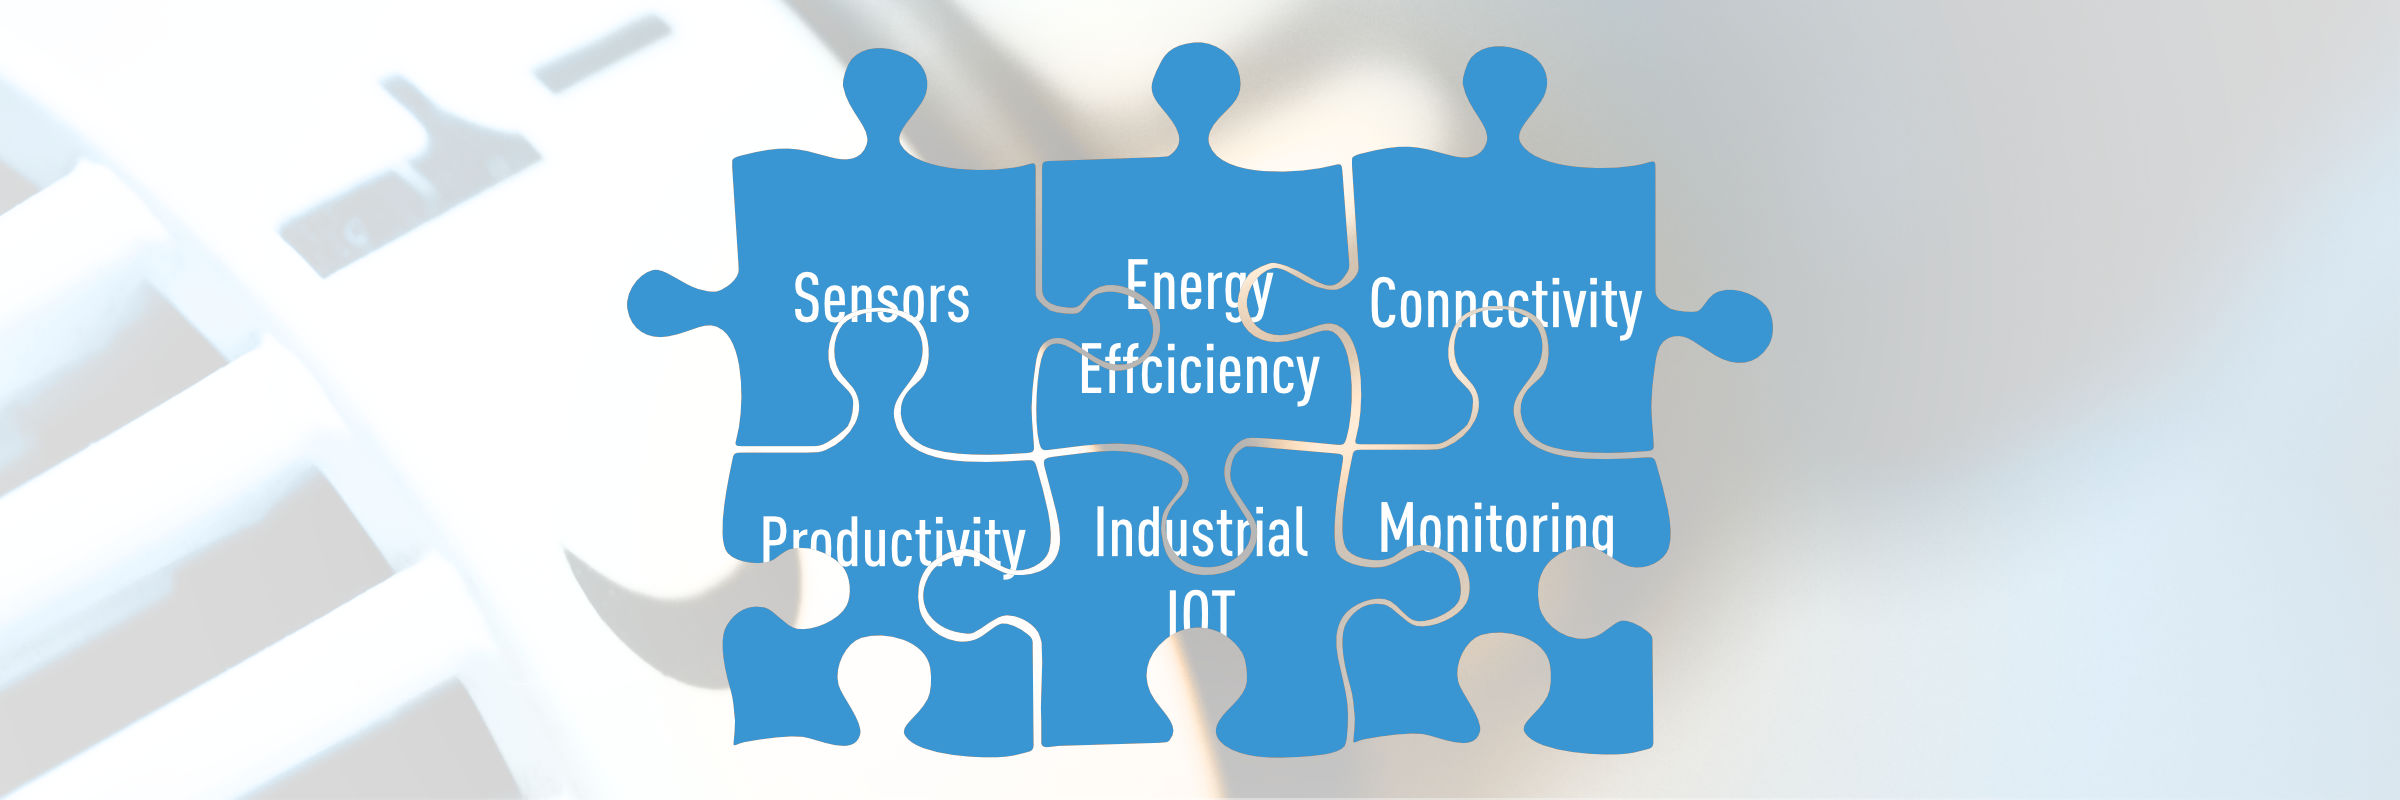 techsource_IoT_energypuzzle